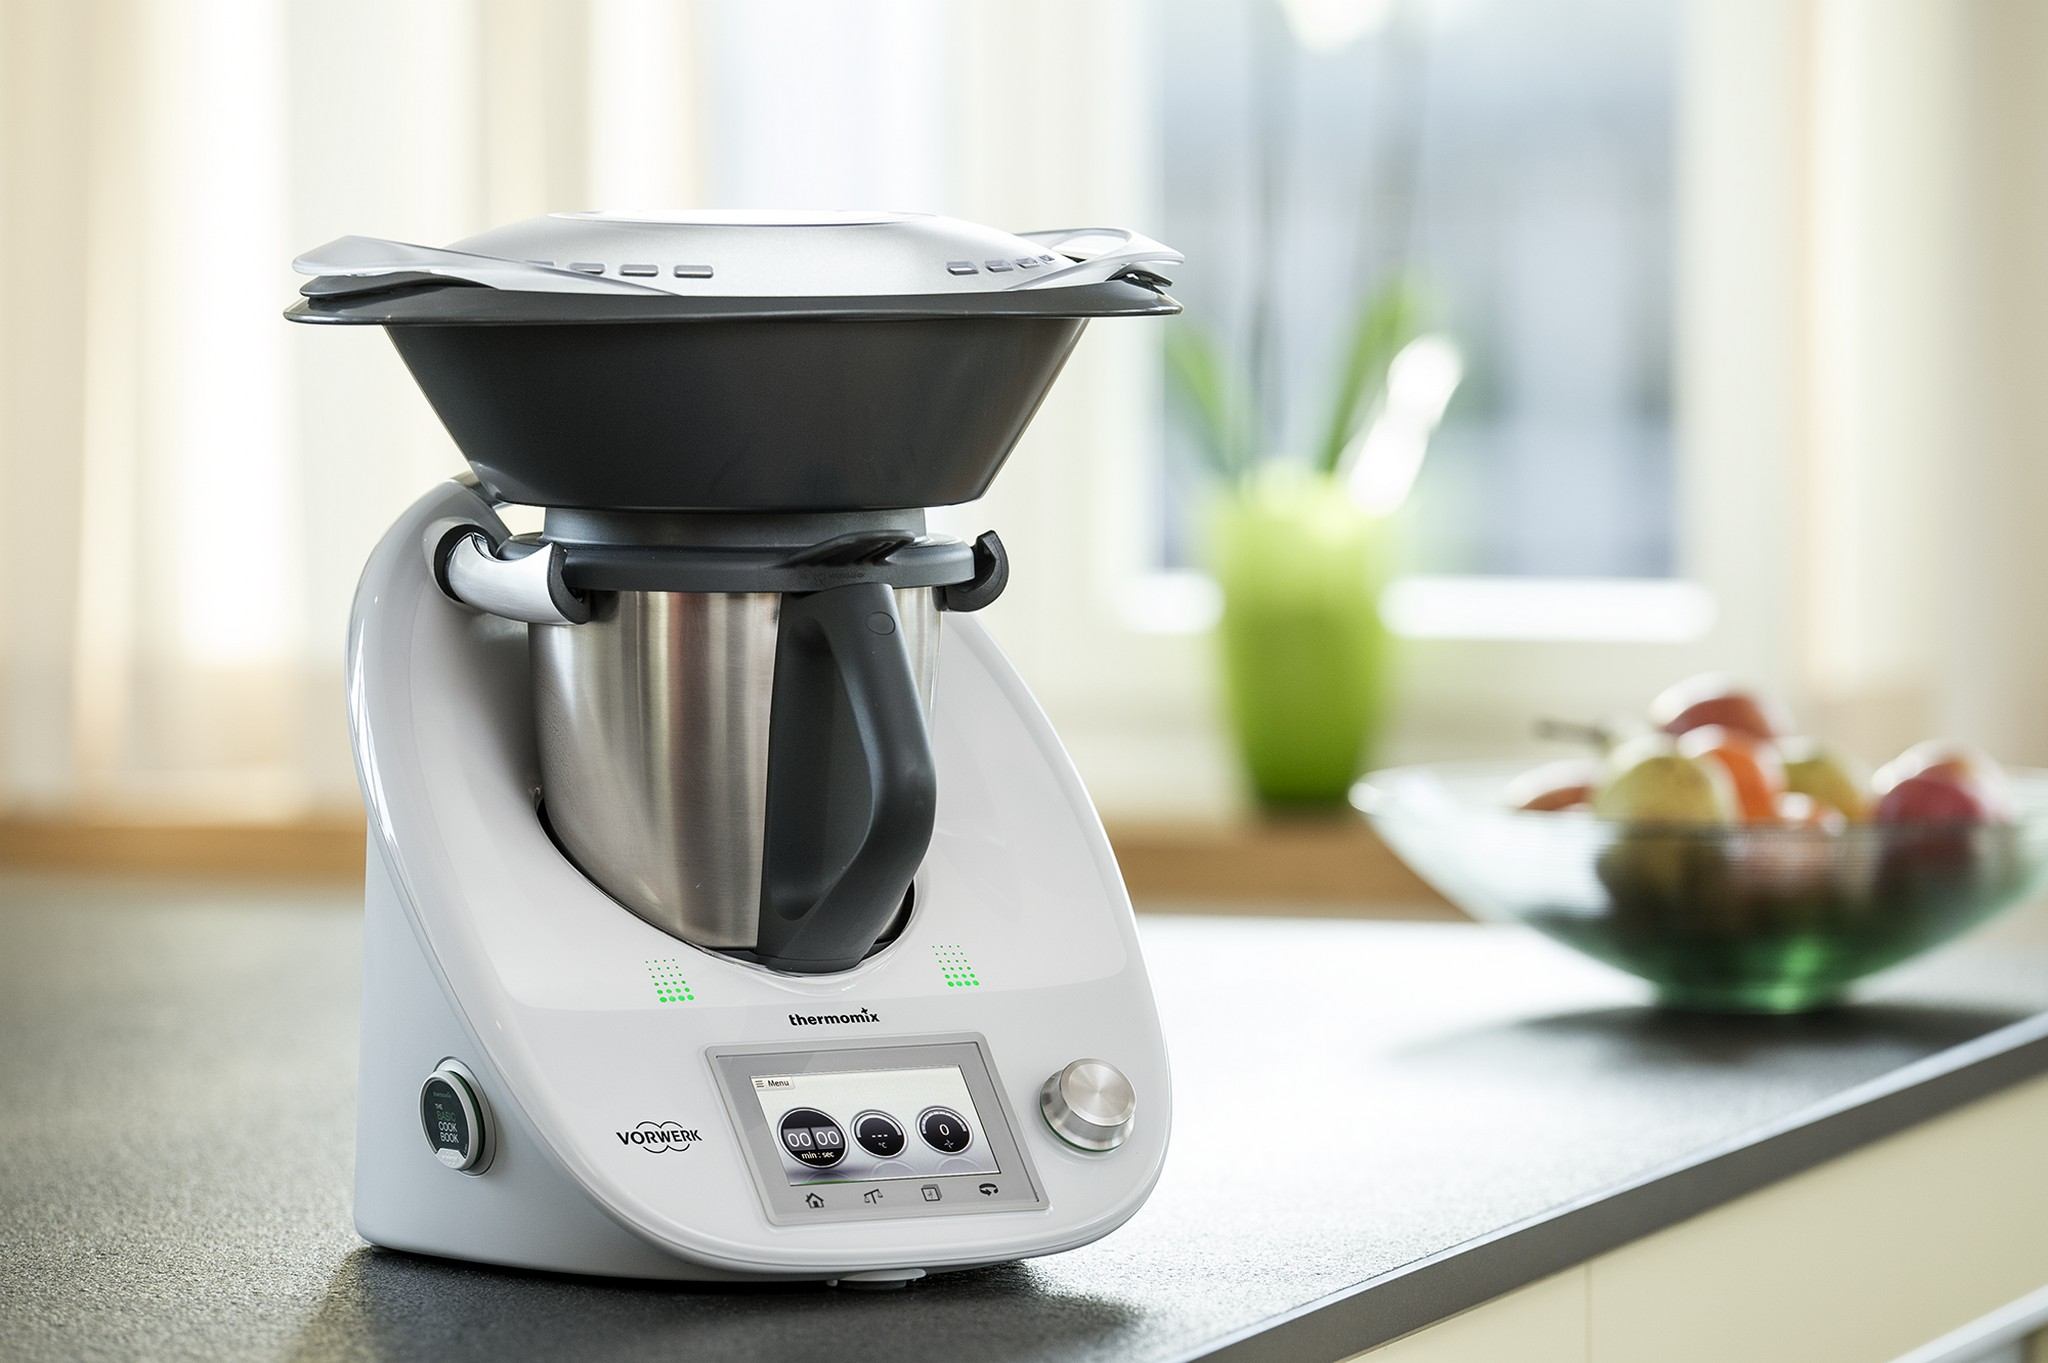 Thermomix tm5 pantalla t ctil y recetas digitales for Cocinar con thermomix tm5